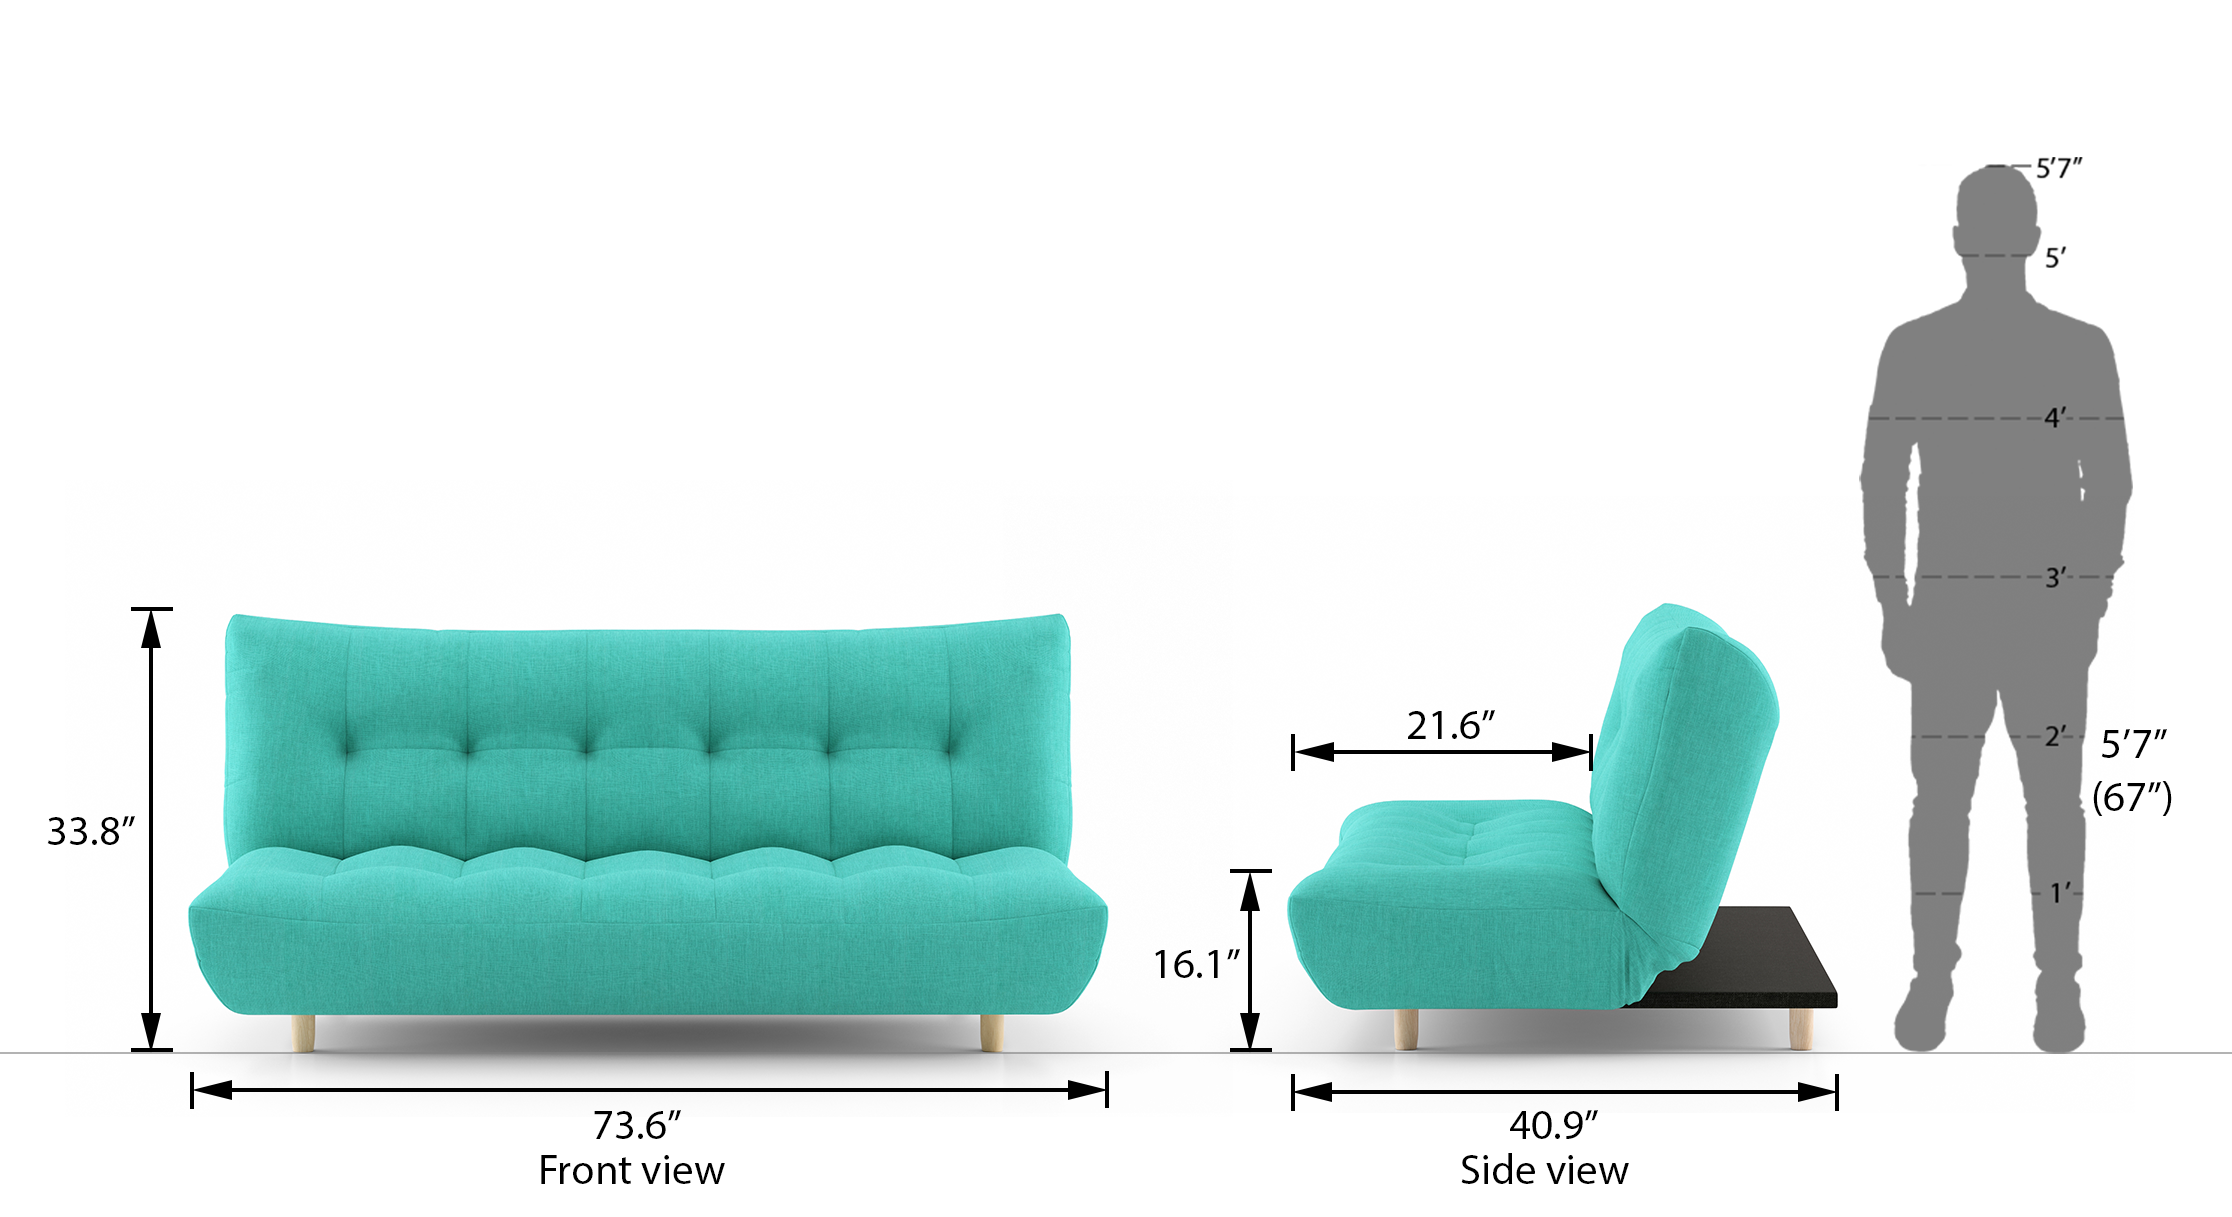 Palermo sofa bed lagoon green 21